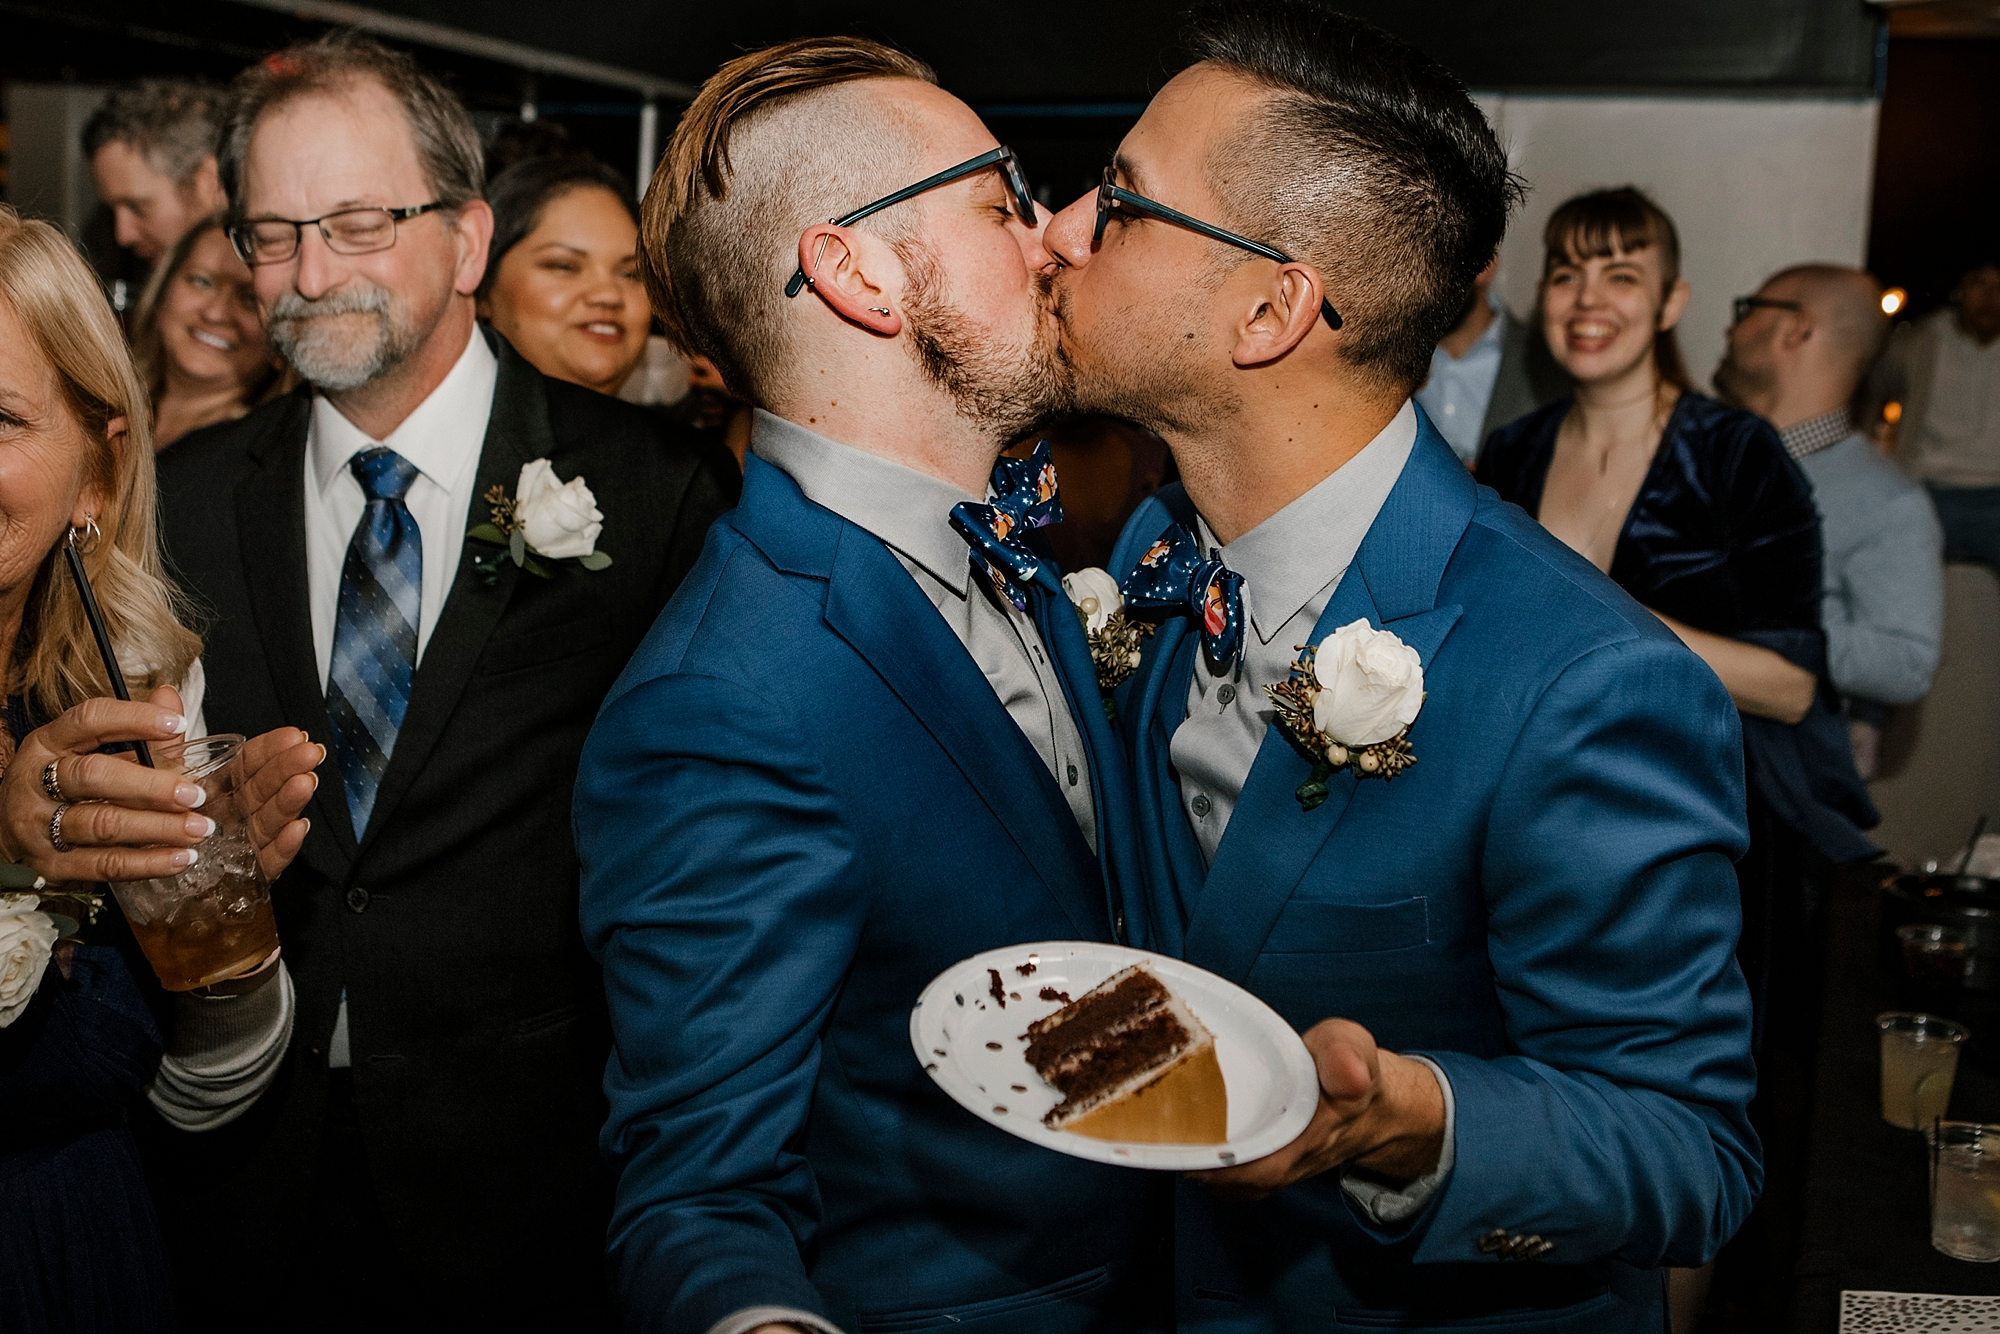 Joe_Mac_Creative_Philadelphia_Philly_LGBT_Gay_Engagement_Wedding_Photography__0153.jpg